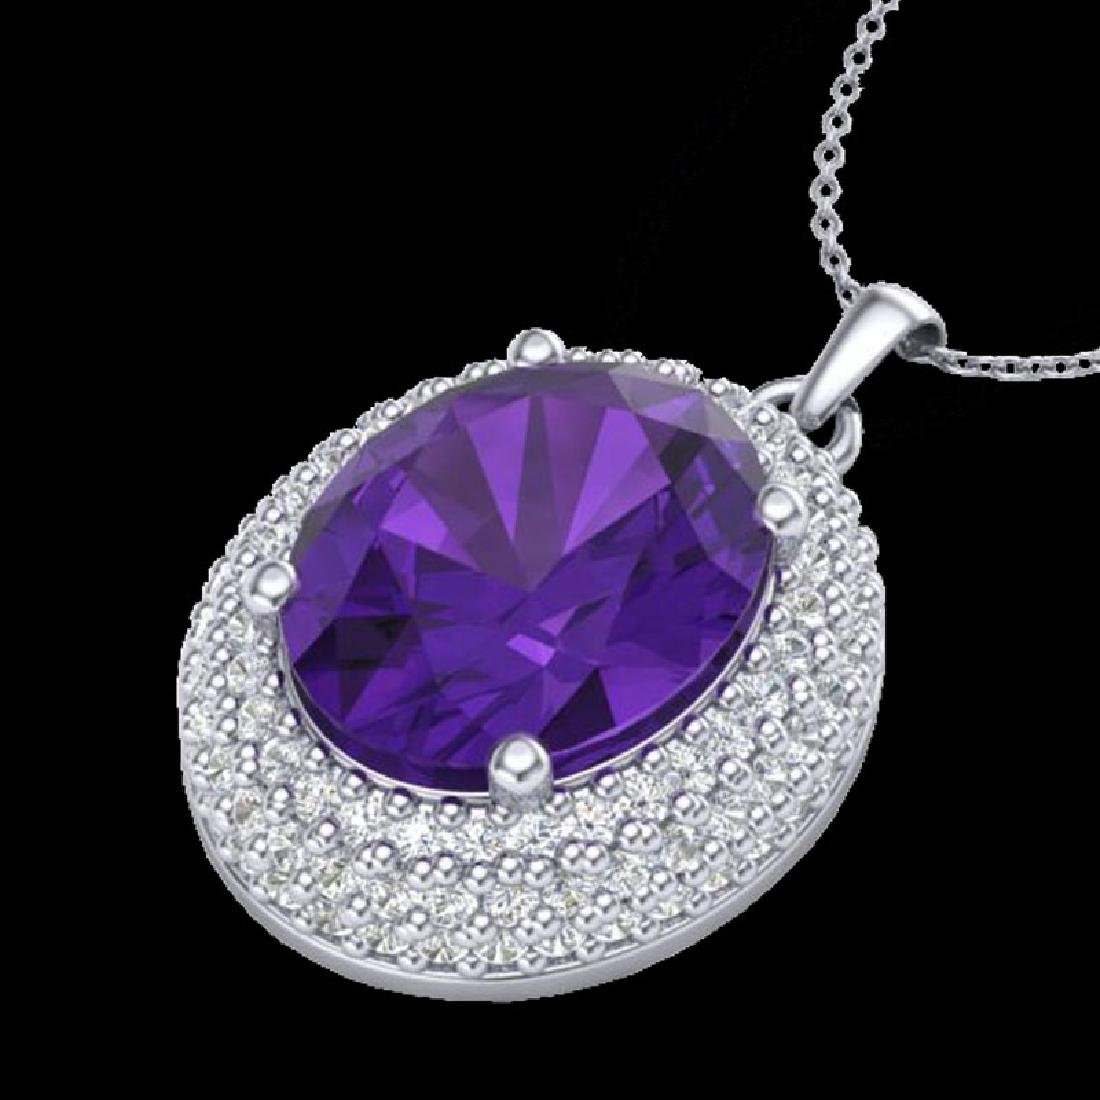 4 CTW Amethyst & Micro Pave VS/SI Diamond Necklace 18K - 2